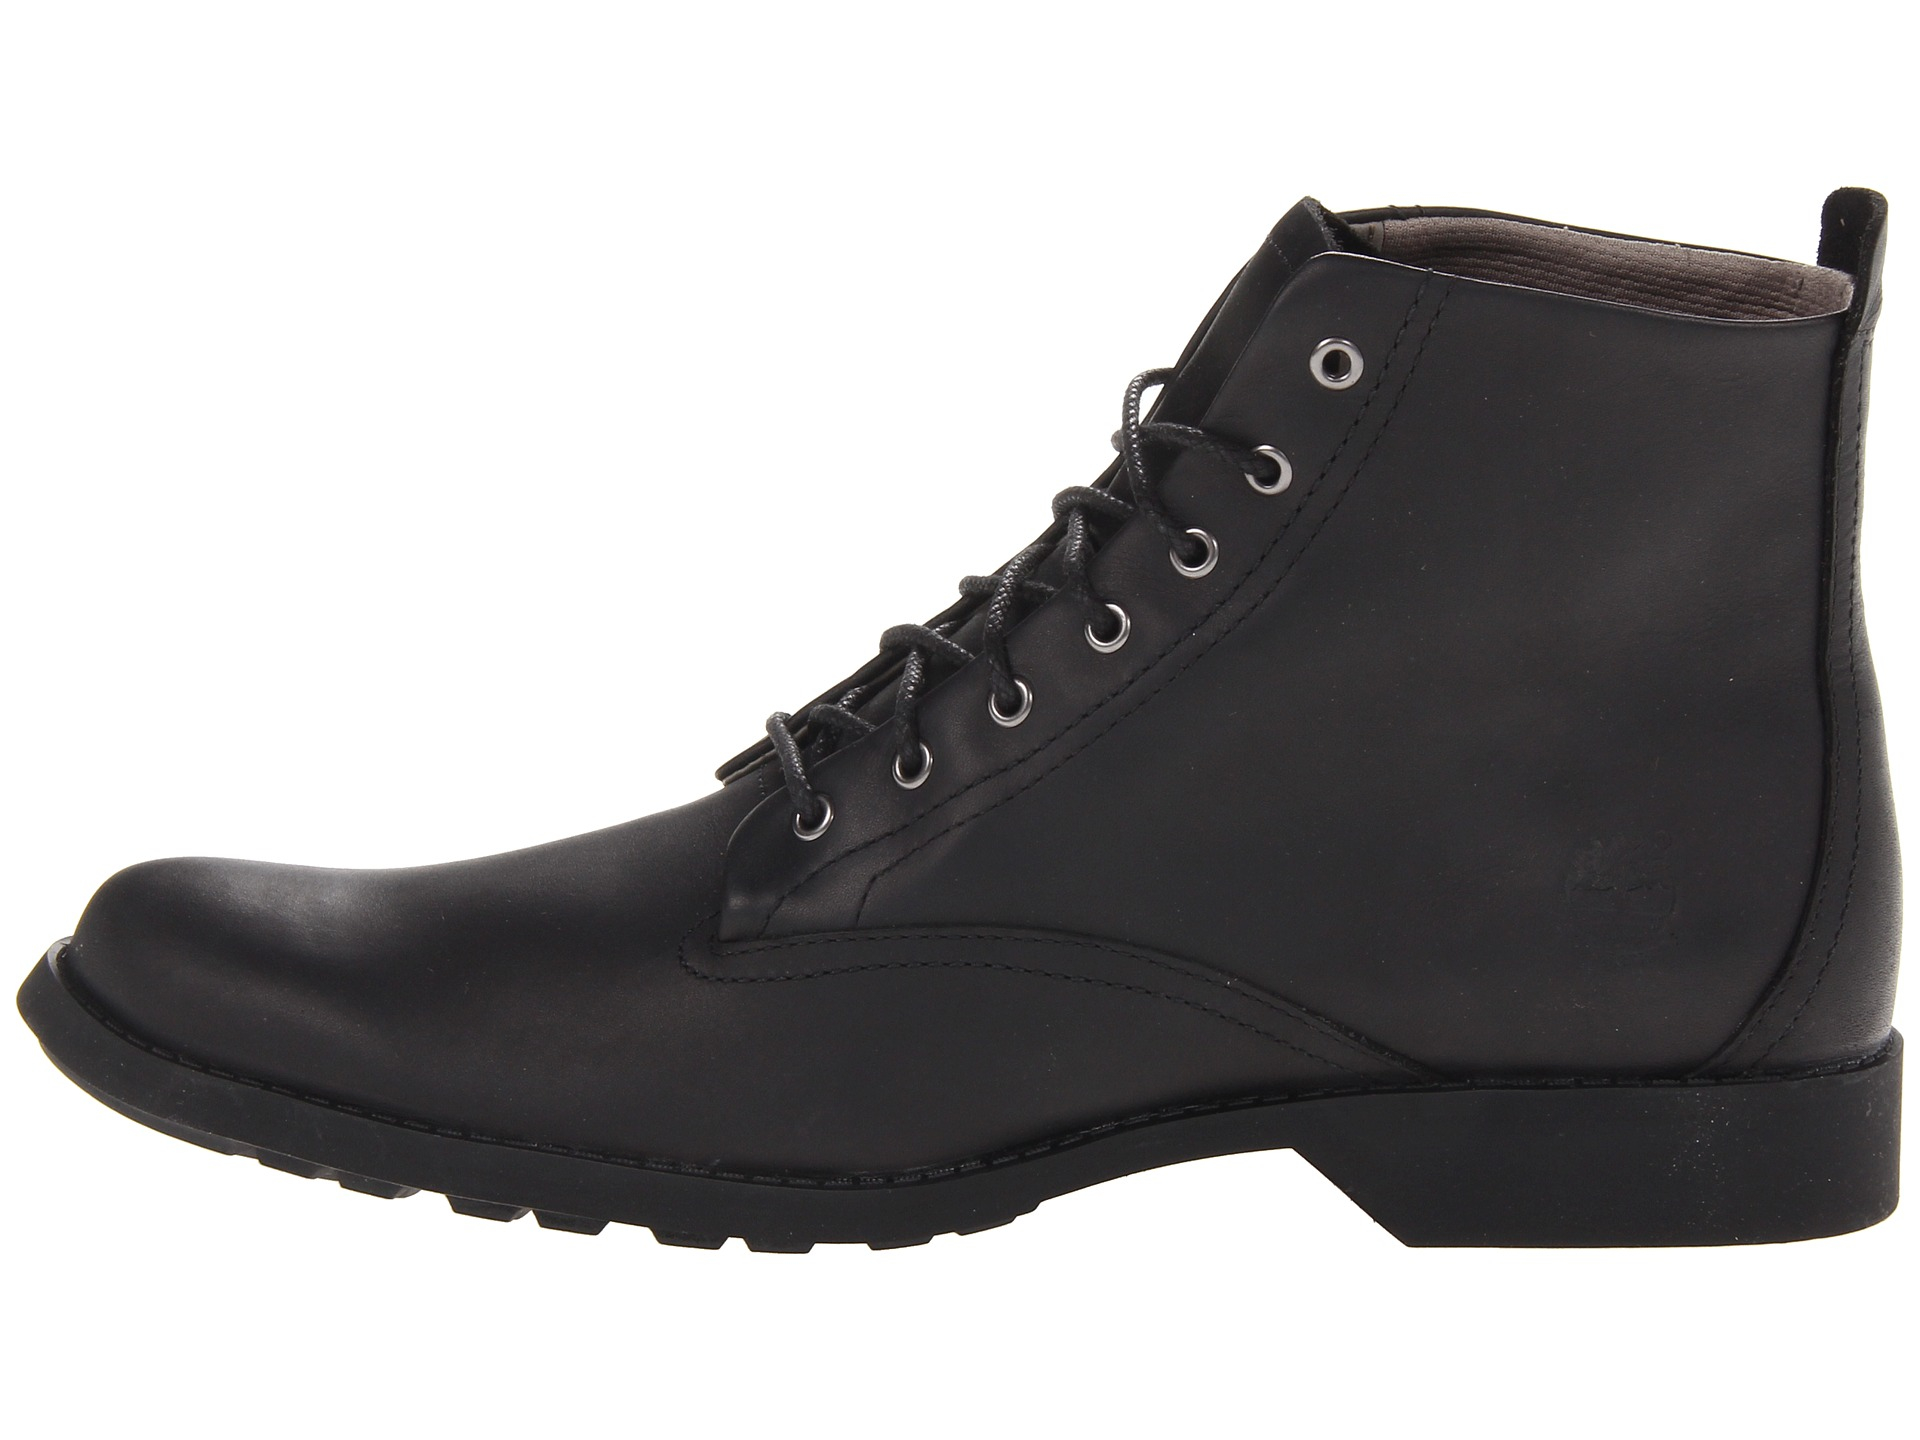 Earthkeepers City Lite Waterproof Chukka, Mens Boots Timberland